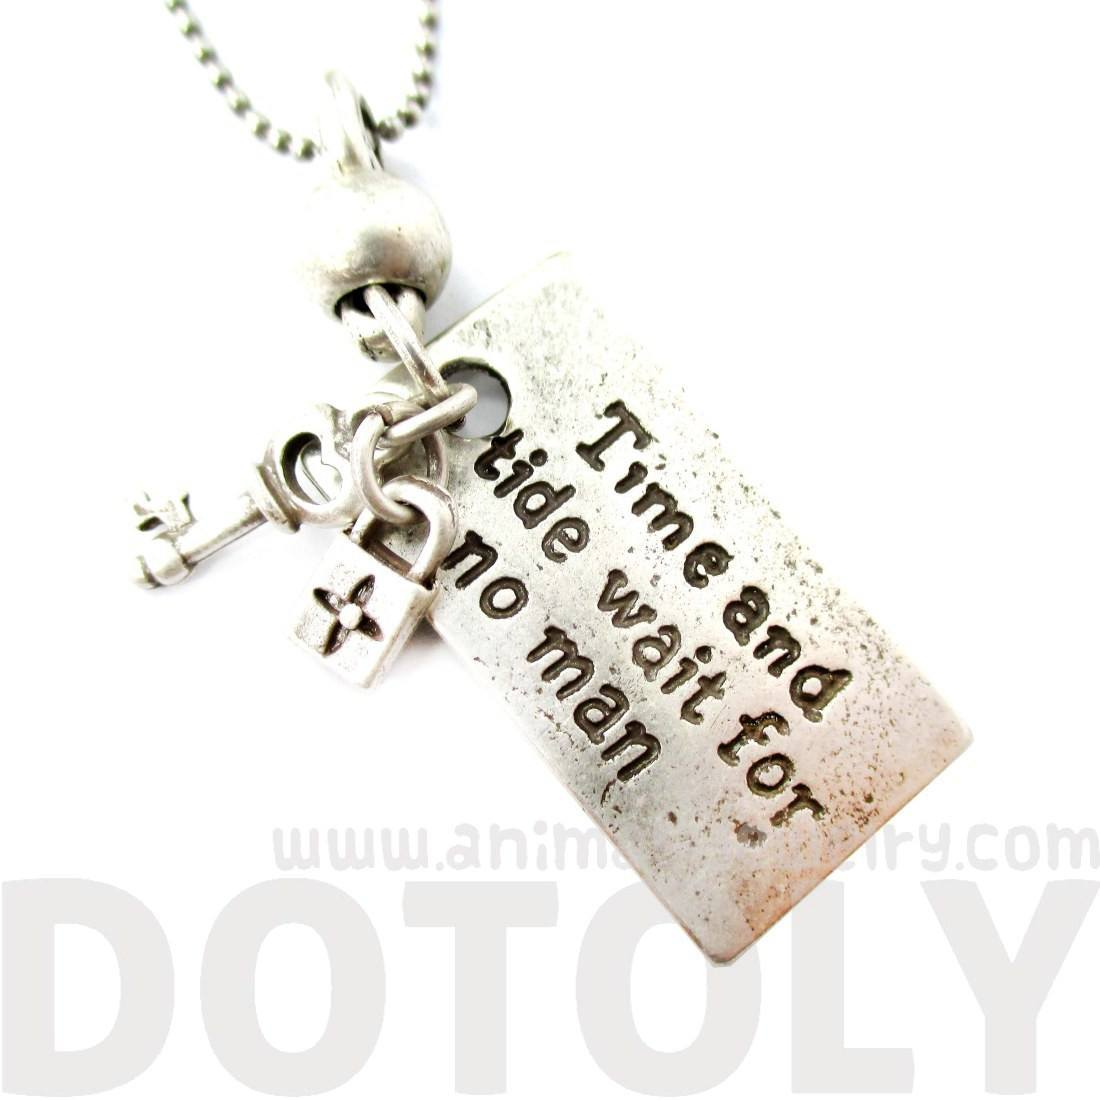 Time and Tide Wait For No Man Quote Shaped Pendant Necklace in Silver